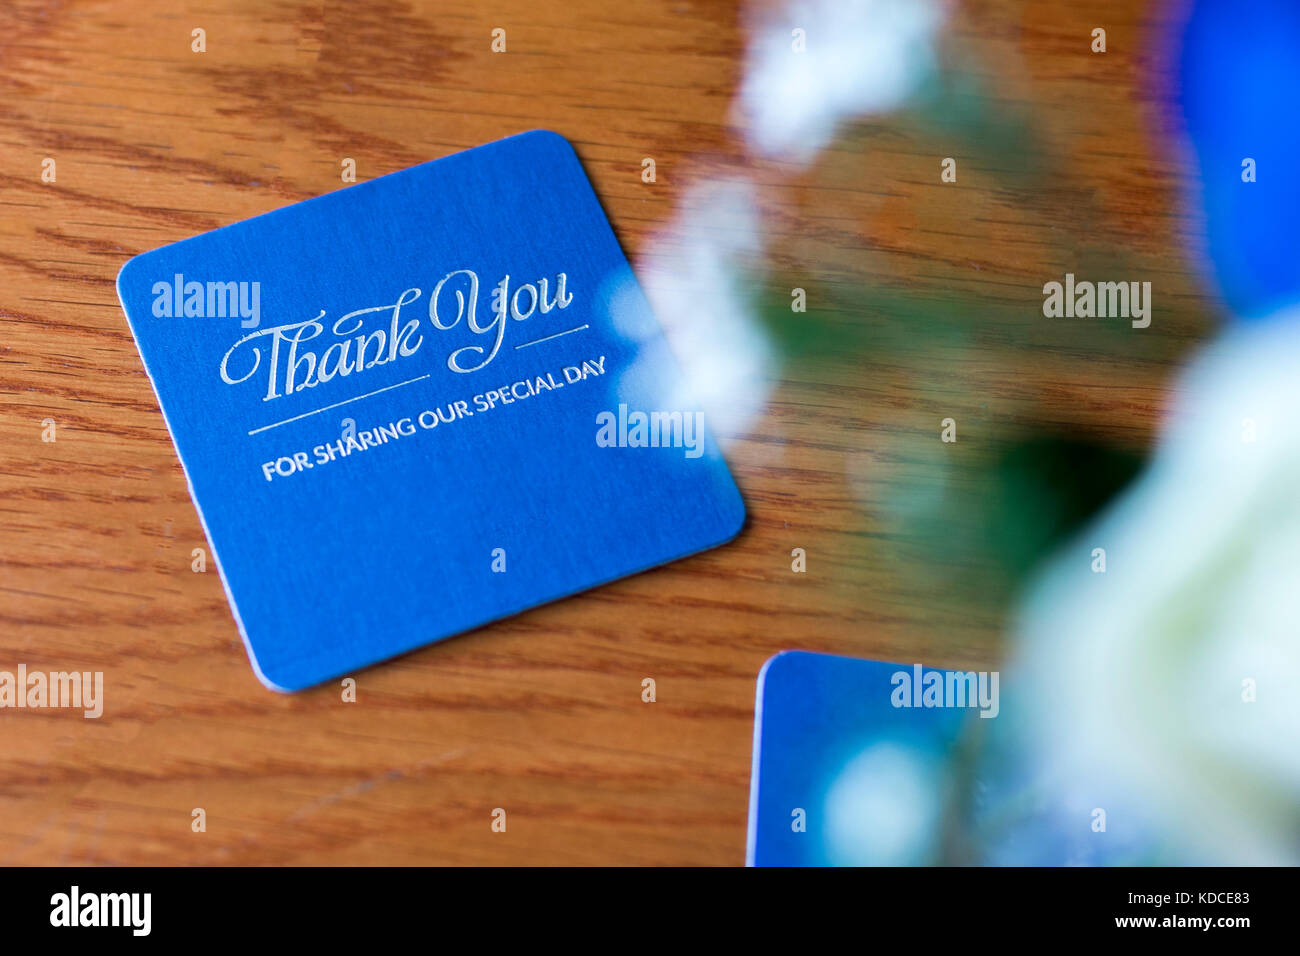 Blue celebration beer mat with silver text on a wooden table at the reception of a renewal of vows stating 'Thank - Stock Image